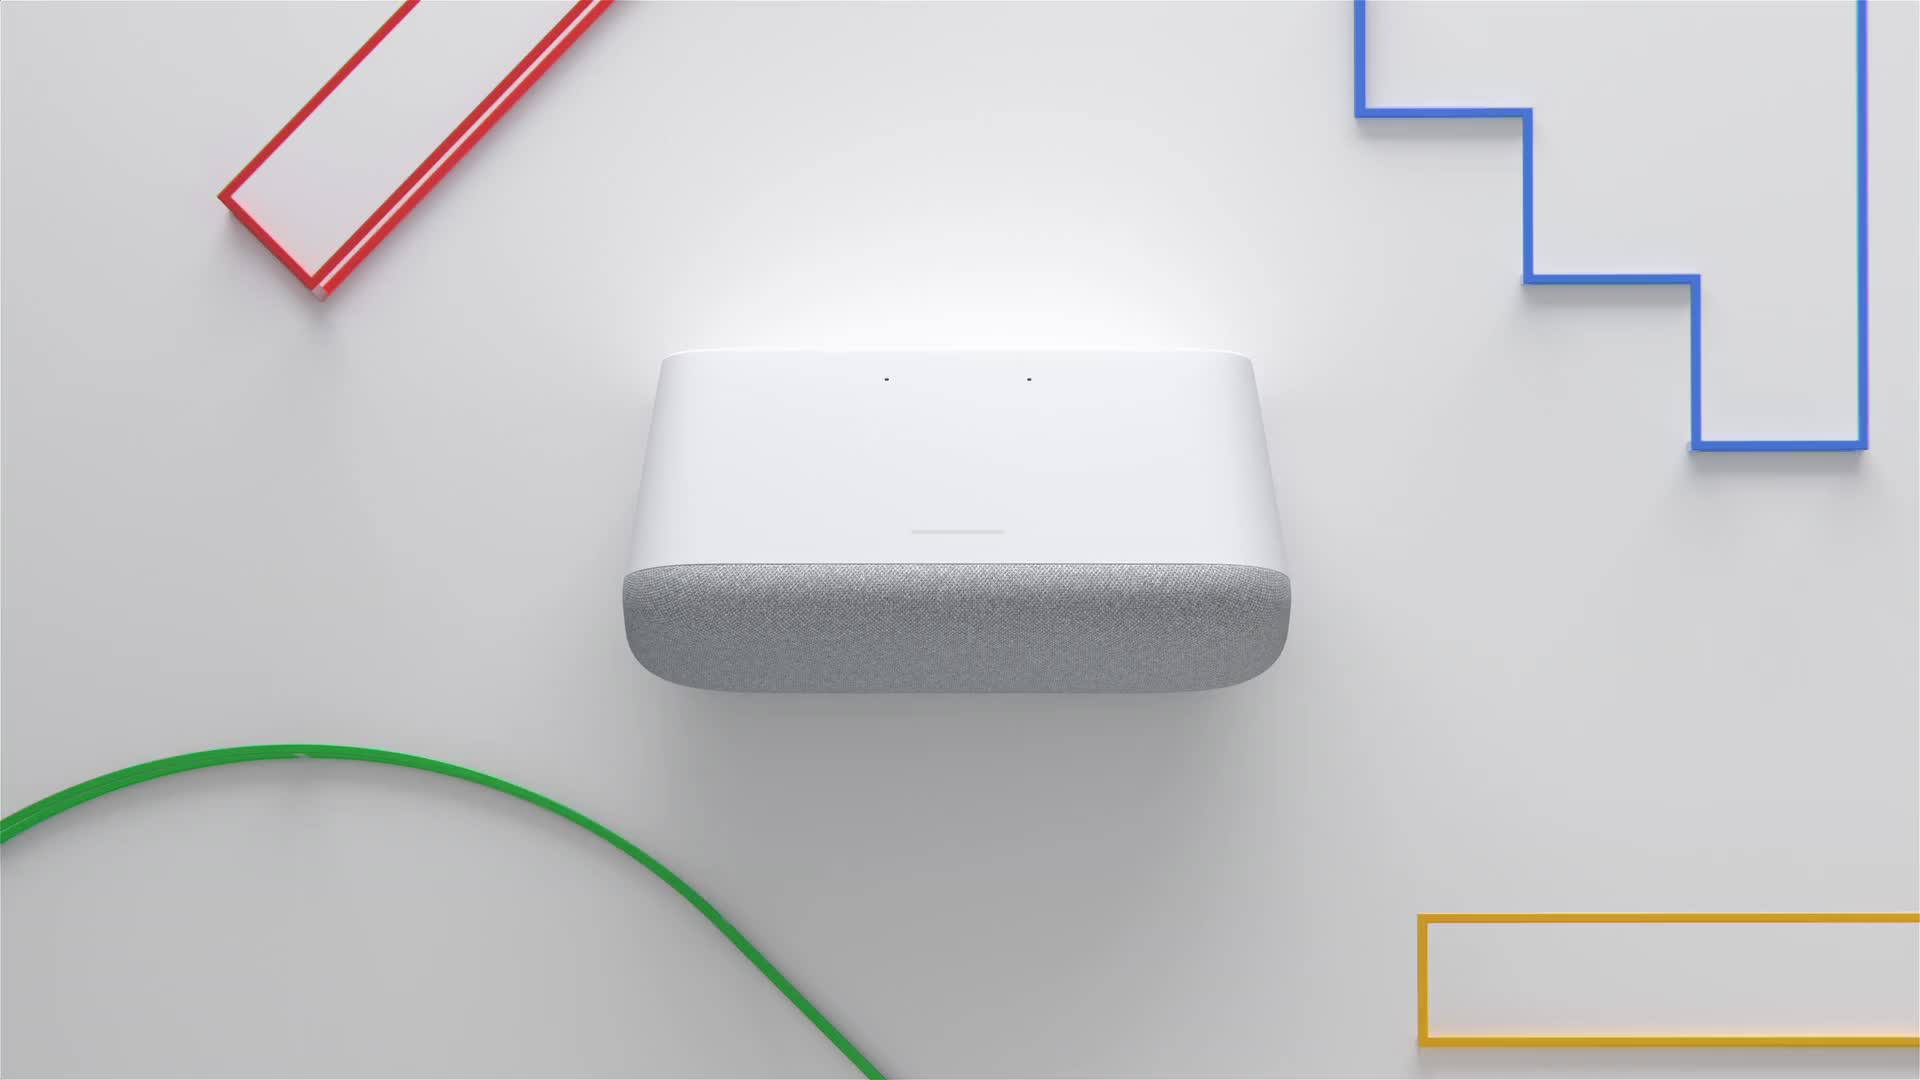 - HomeMaxSmartSound - Could Google's 'Smart Sound' be more than just a gimmick?